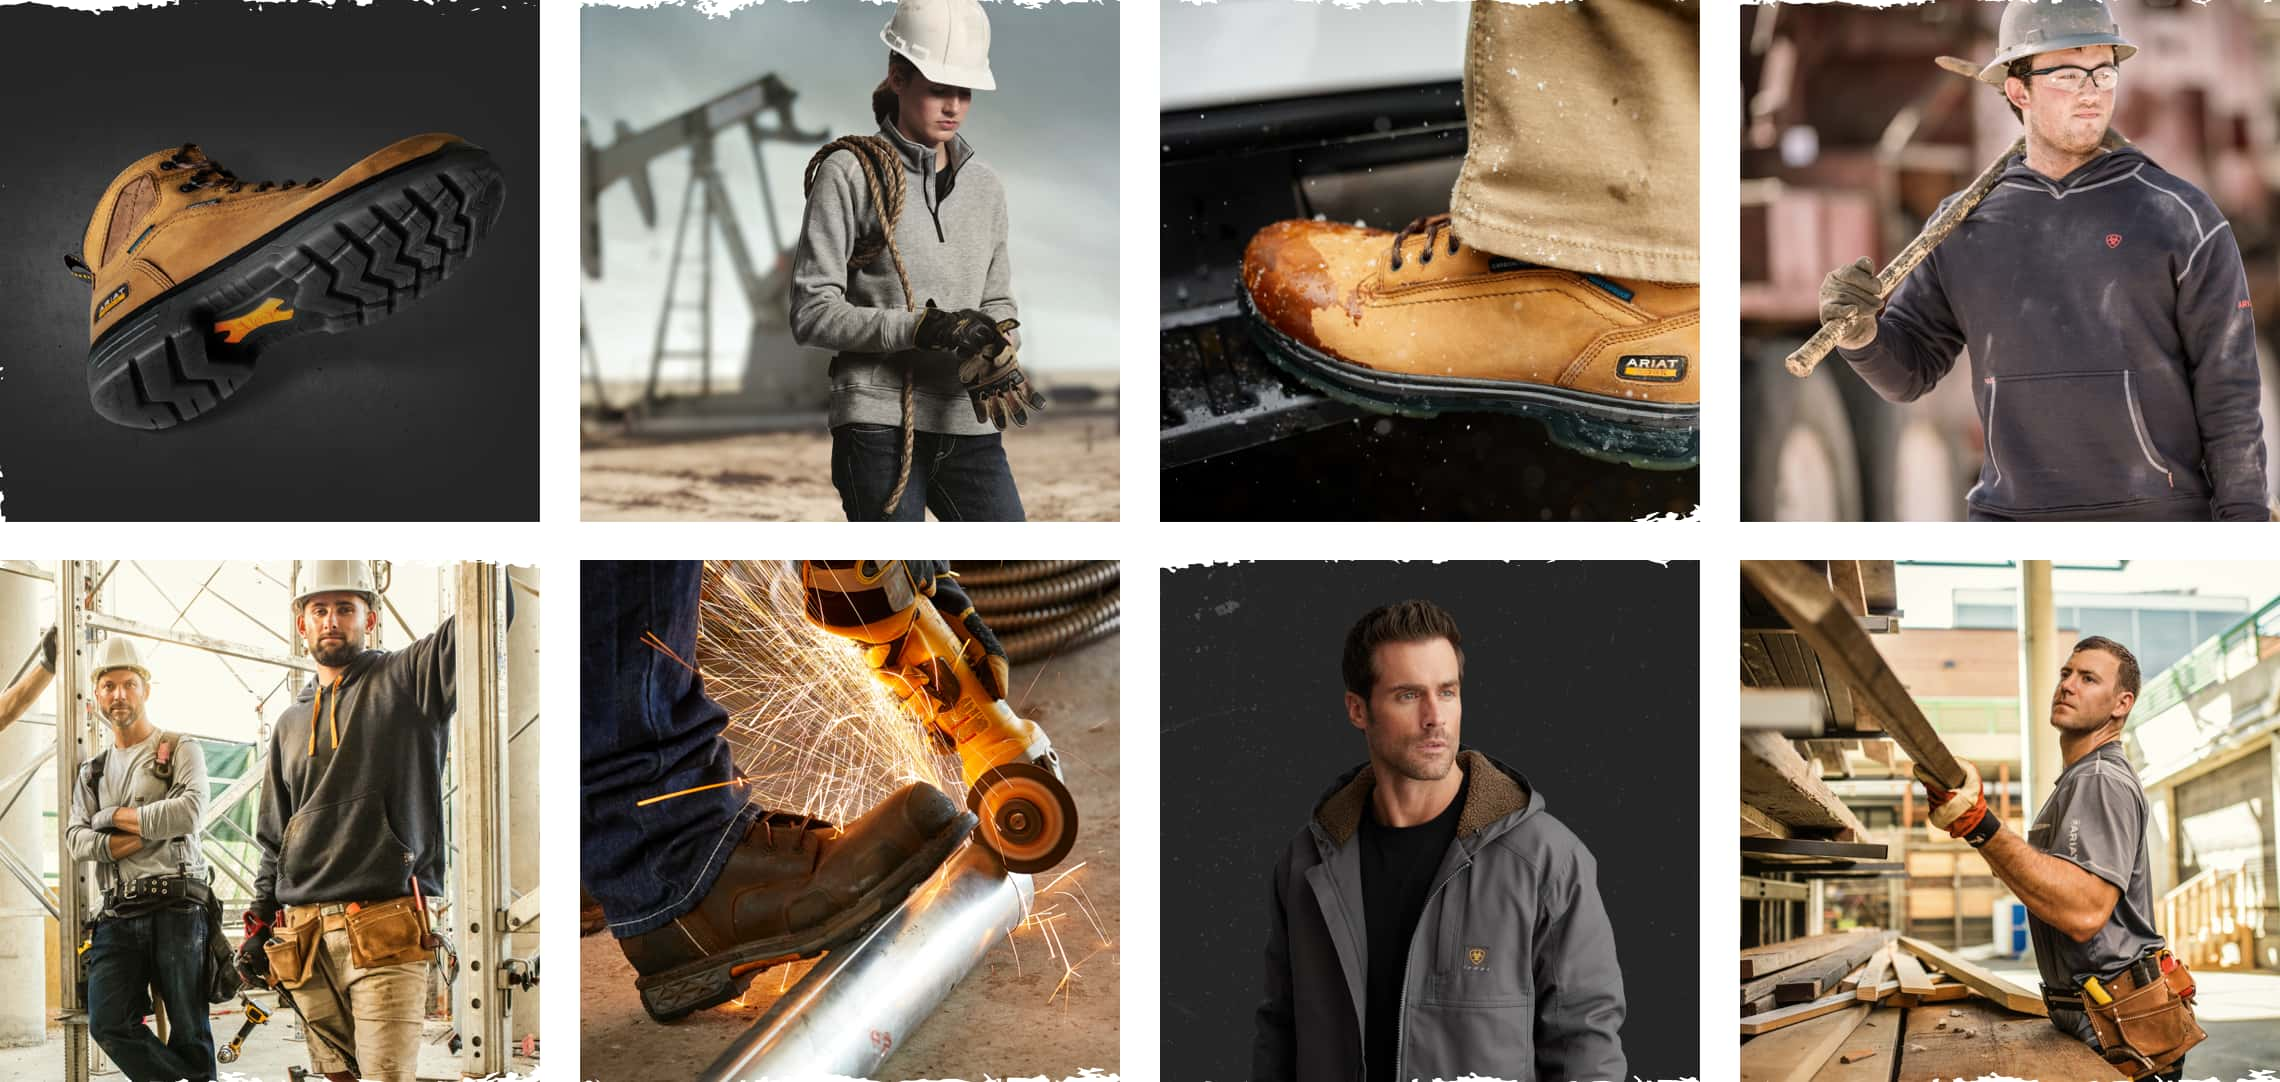 Grid showing ariat brand photography - various photographs of Ariat workwear in-use